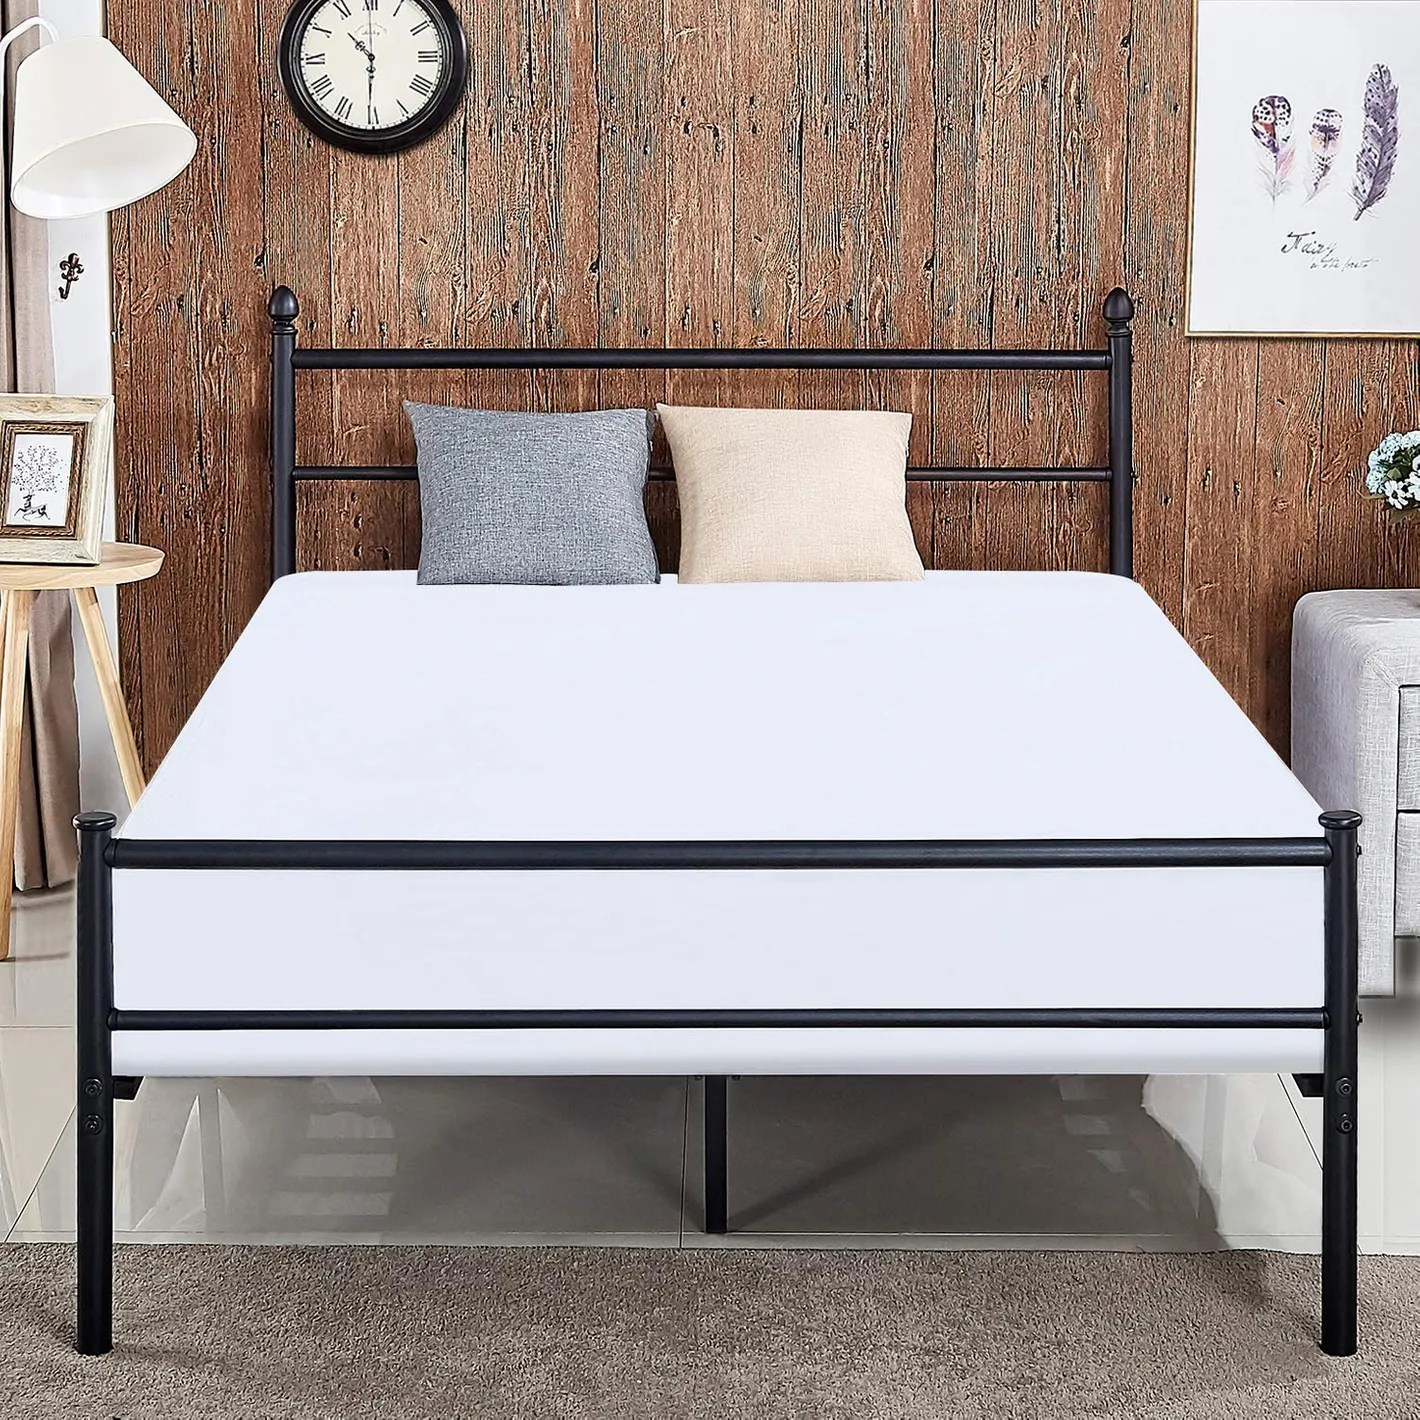 Bed Frame Size Full Matres Image